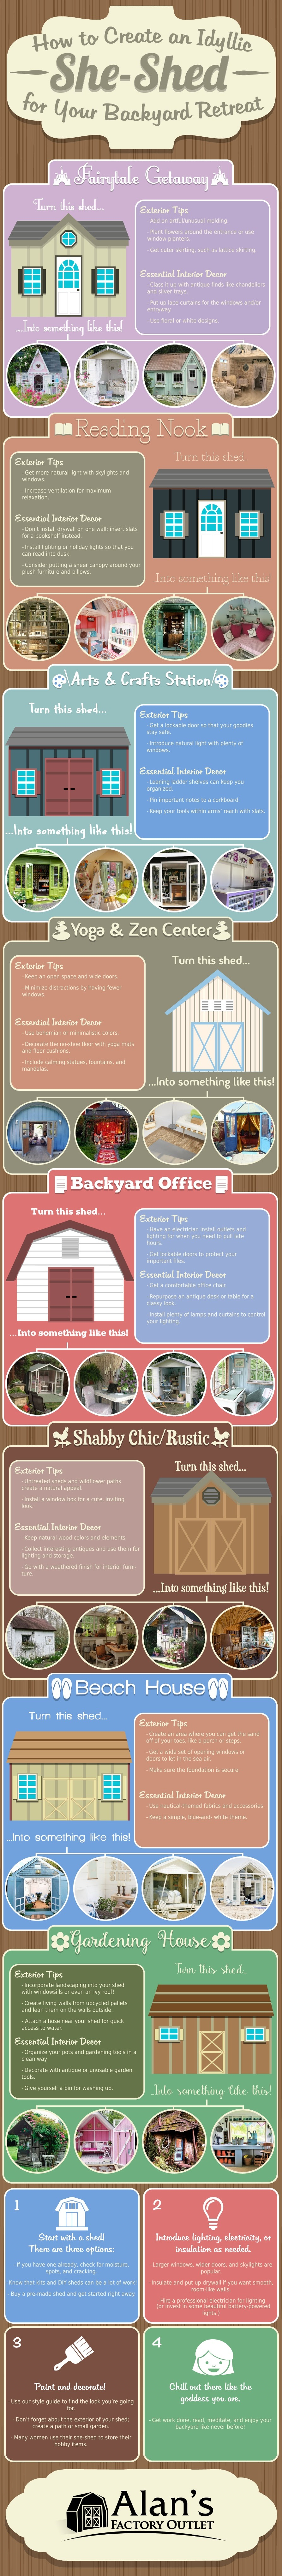 How to Create an Idyllic She-Shed for Your Backyard Retreat #infographic